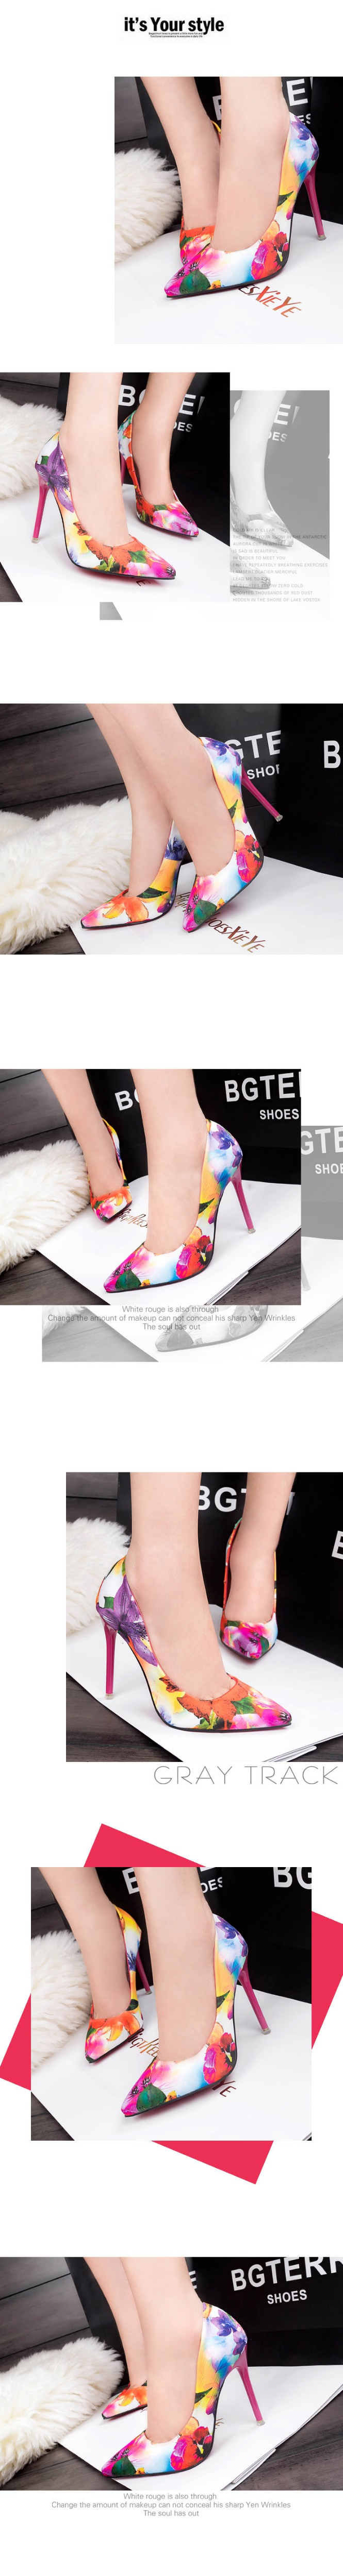 New High-heeled Pumps Women Shoes High Heels Blue Orange Printing Shallow Mouth Thin Heel Pointed Toe Shoes For Women ZK1.5